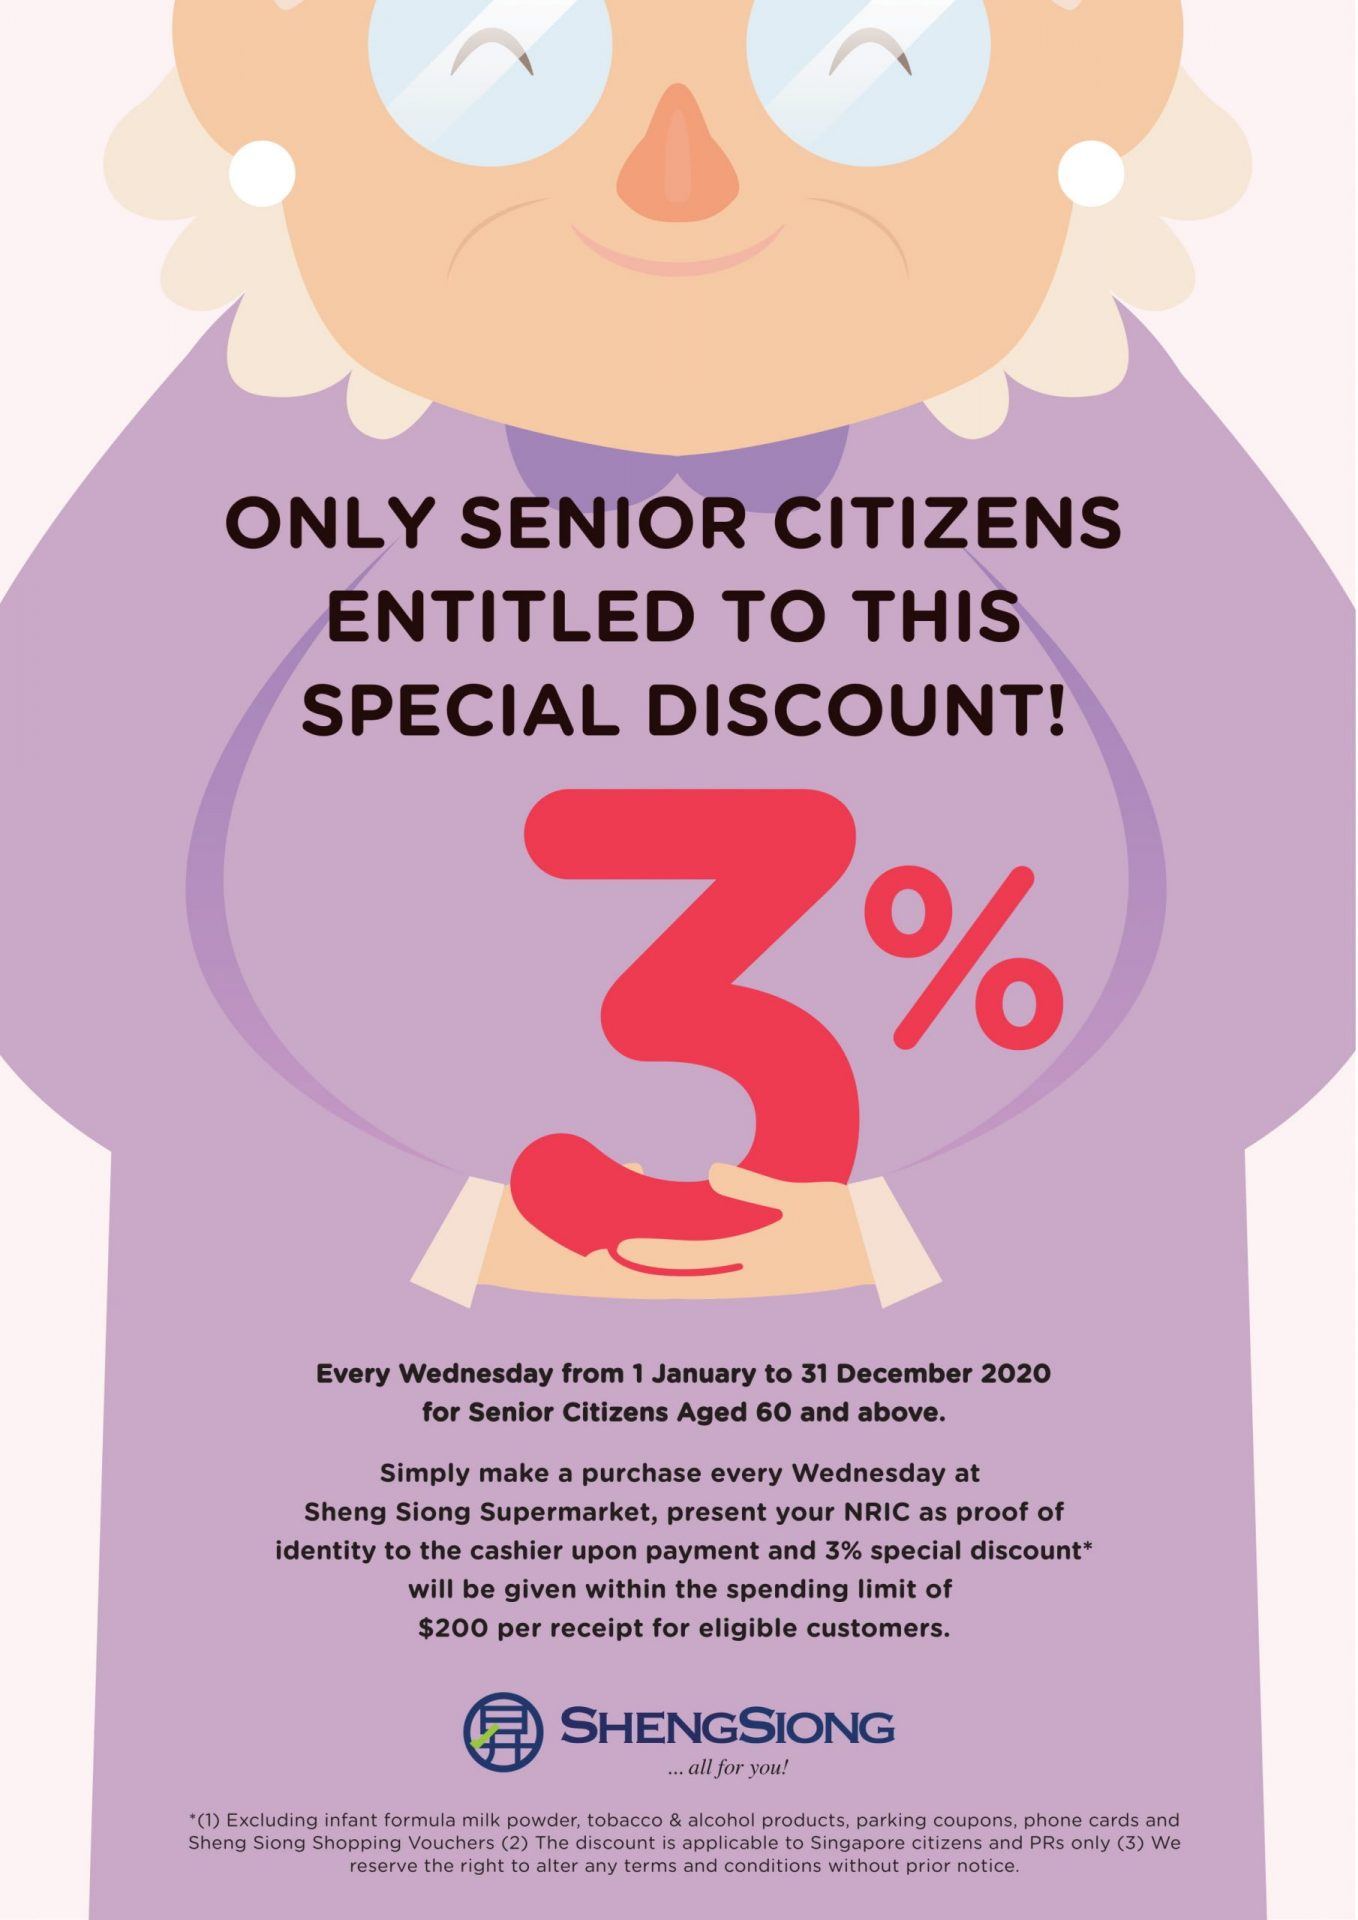 Senior Citizens Enjoys Additional 3% Discounts